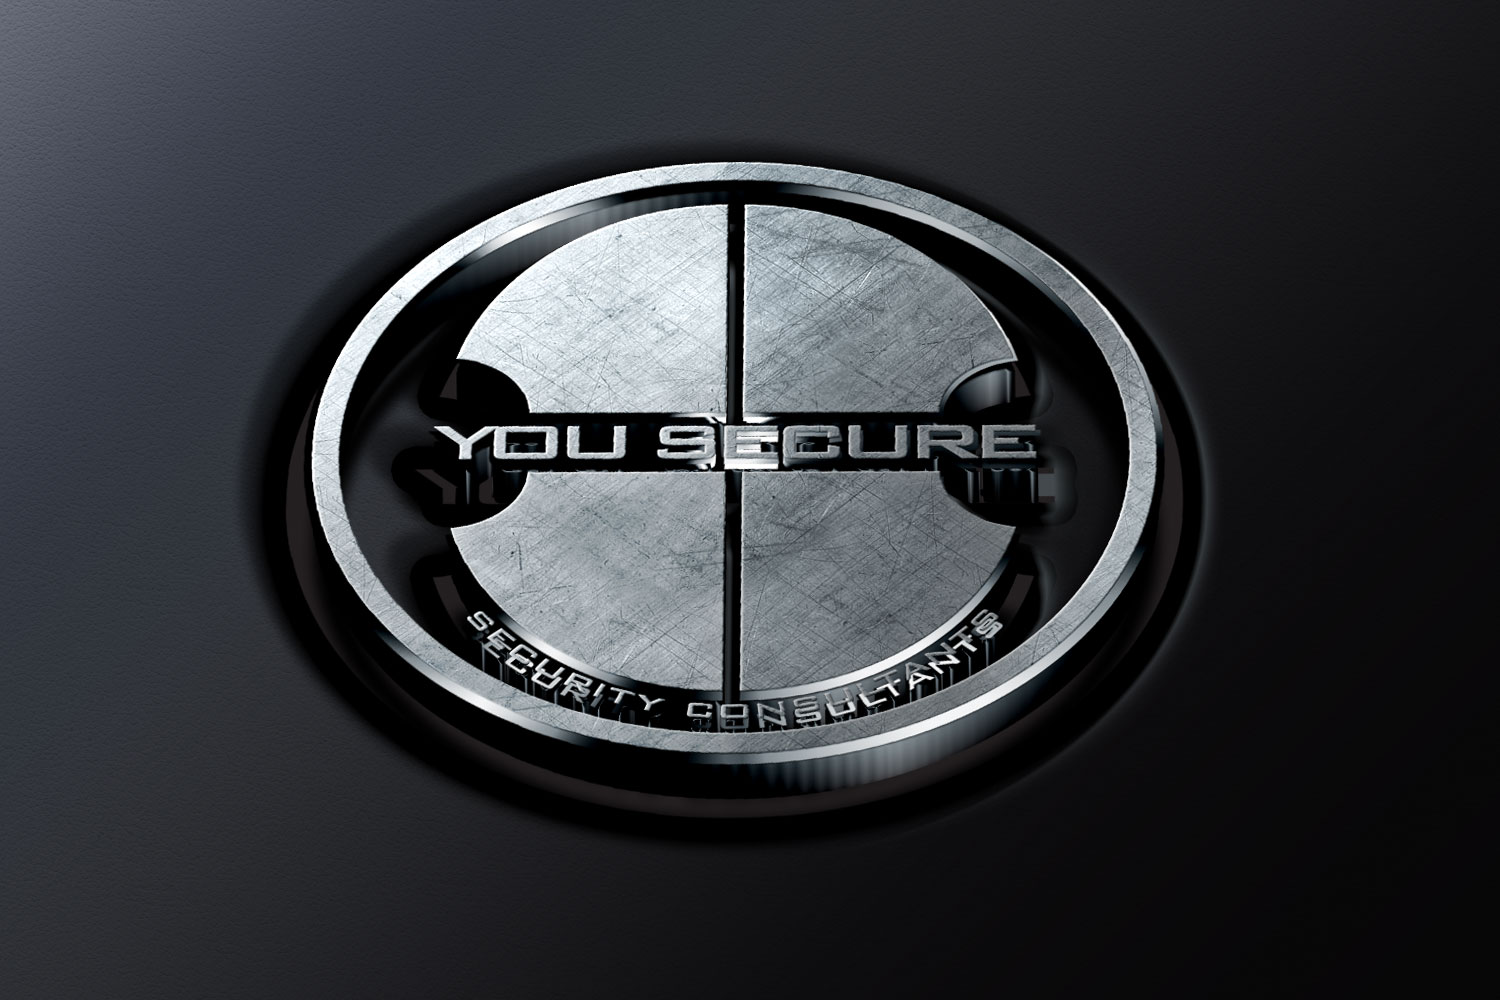 YouSecure